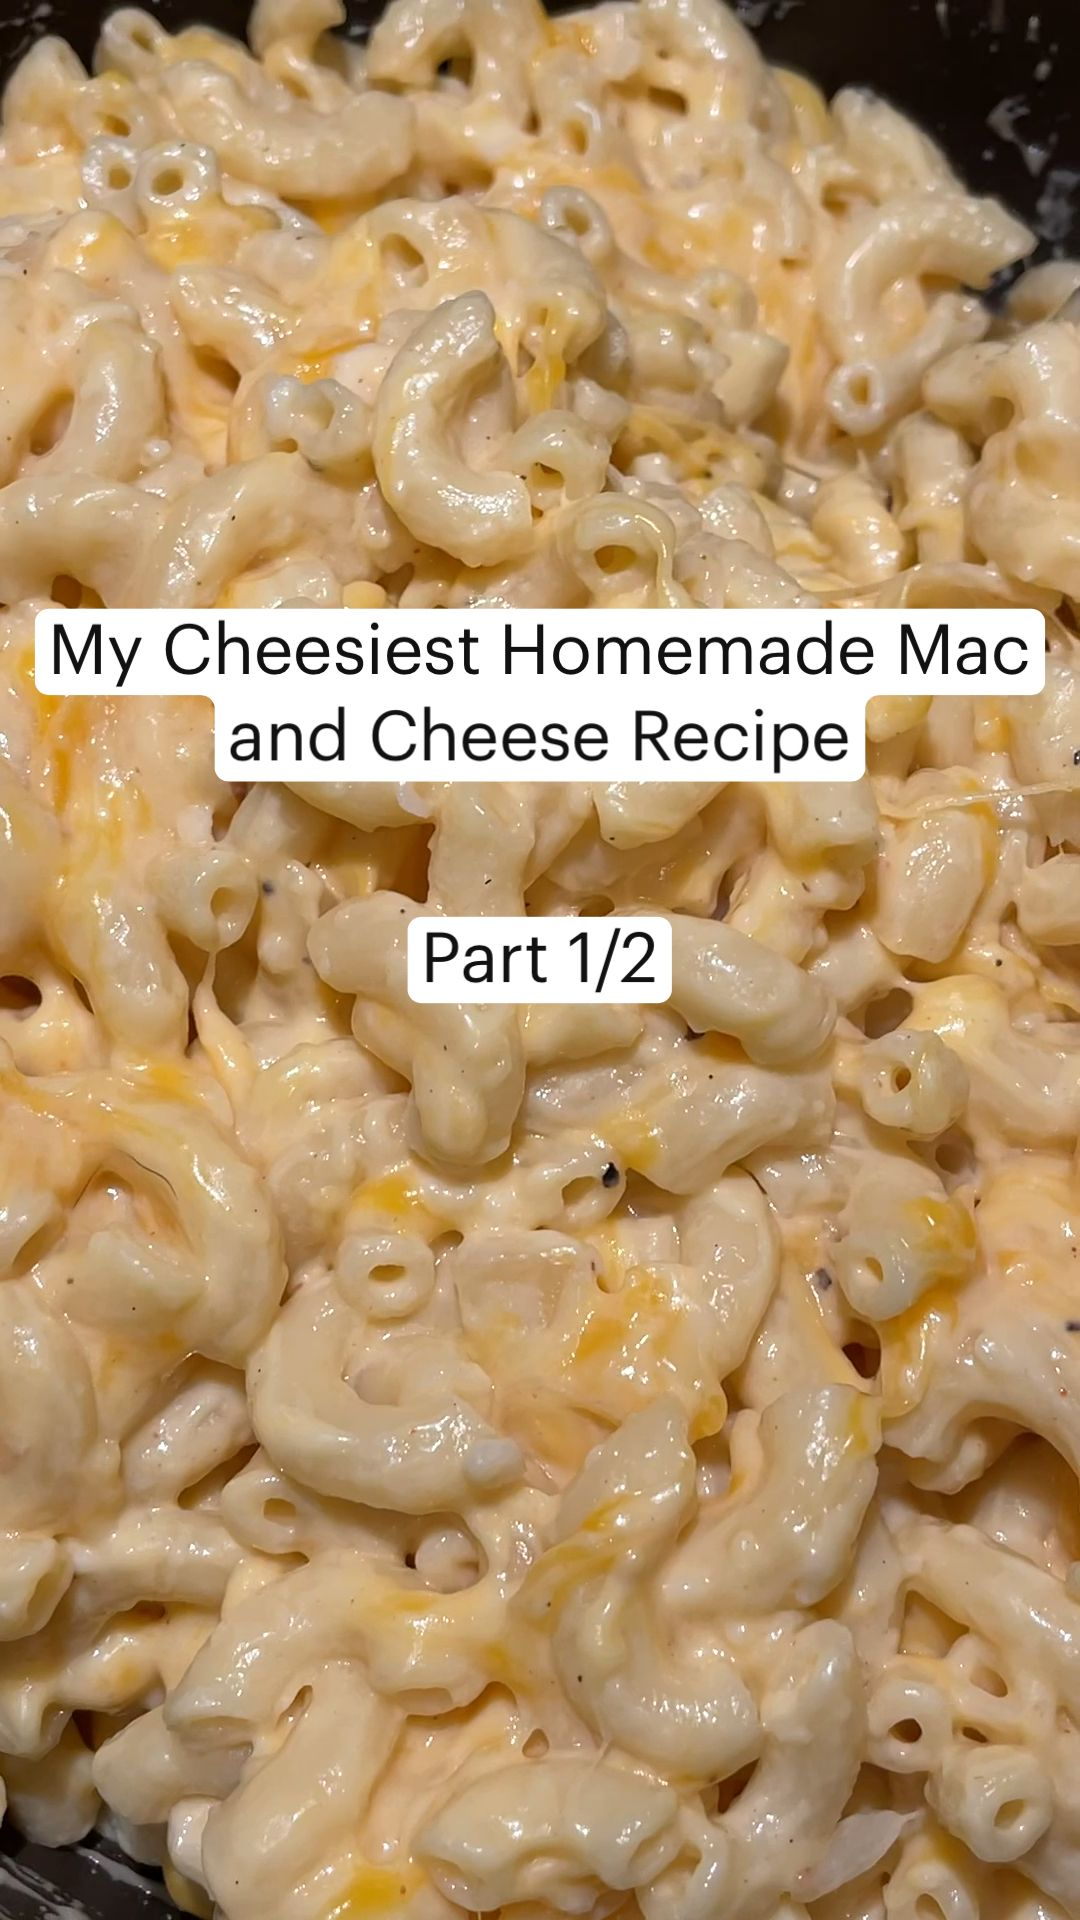 My Cheesiest Homemade Mac and Cheese Recipe